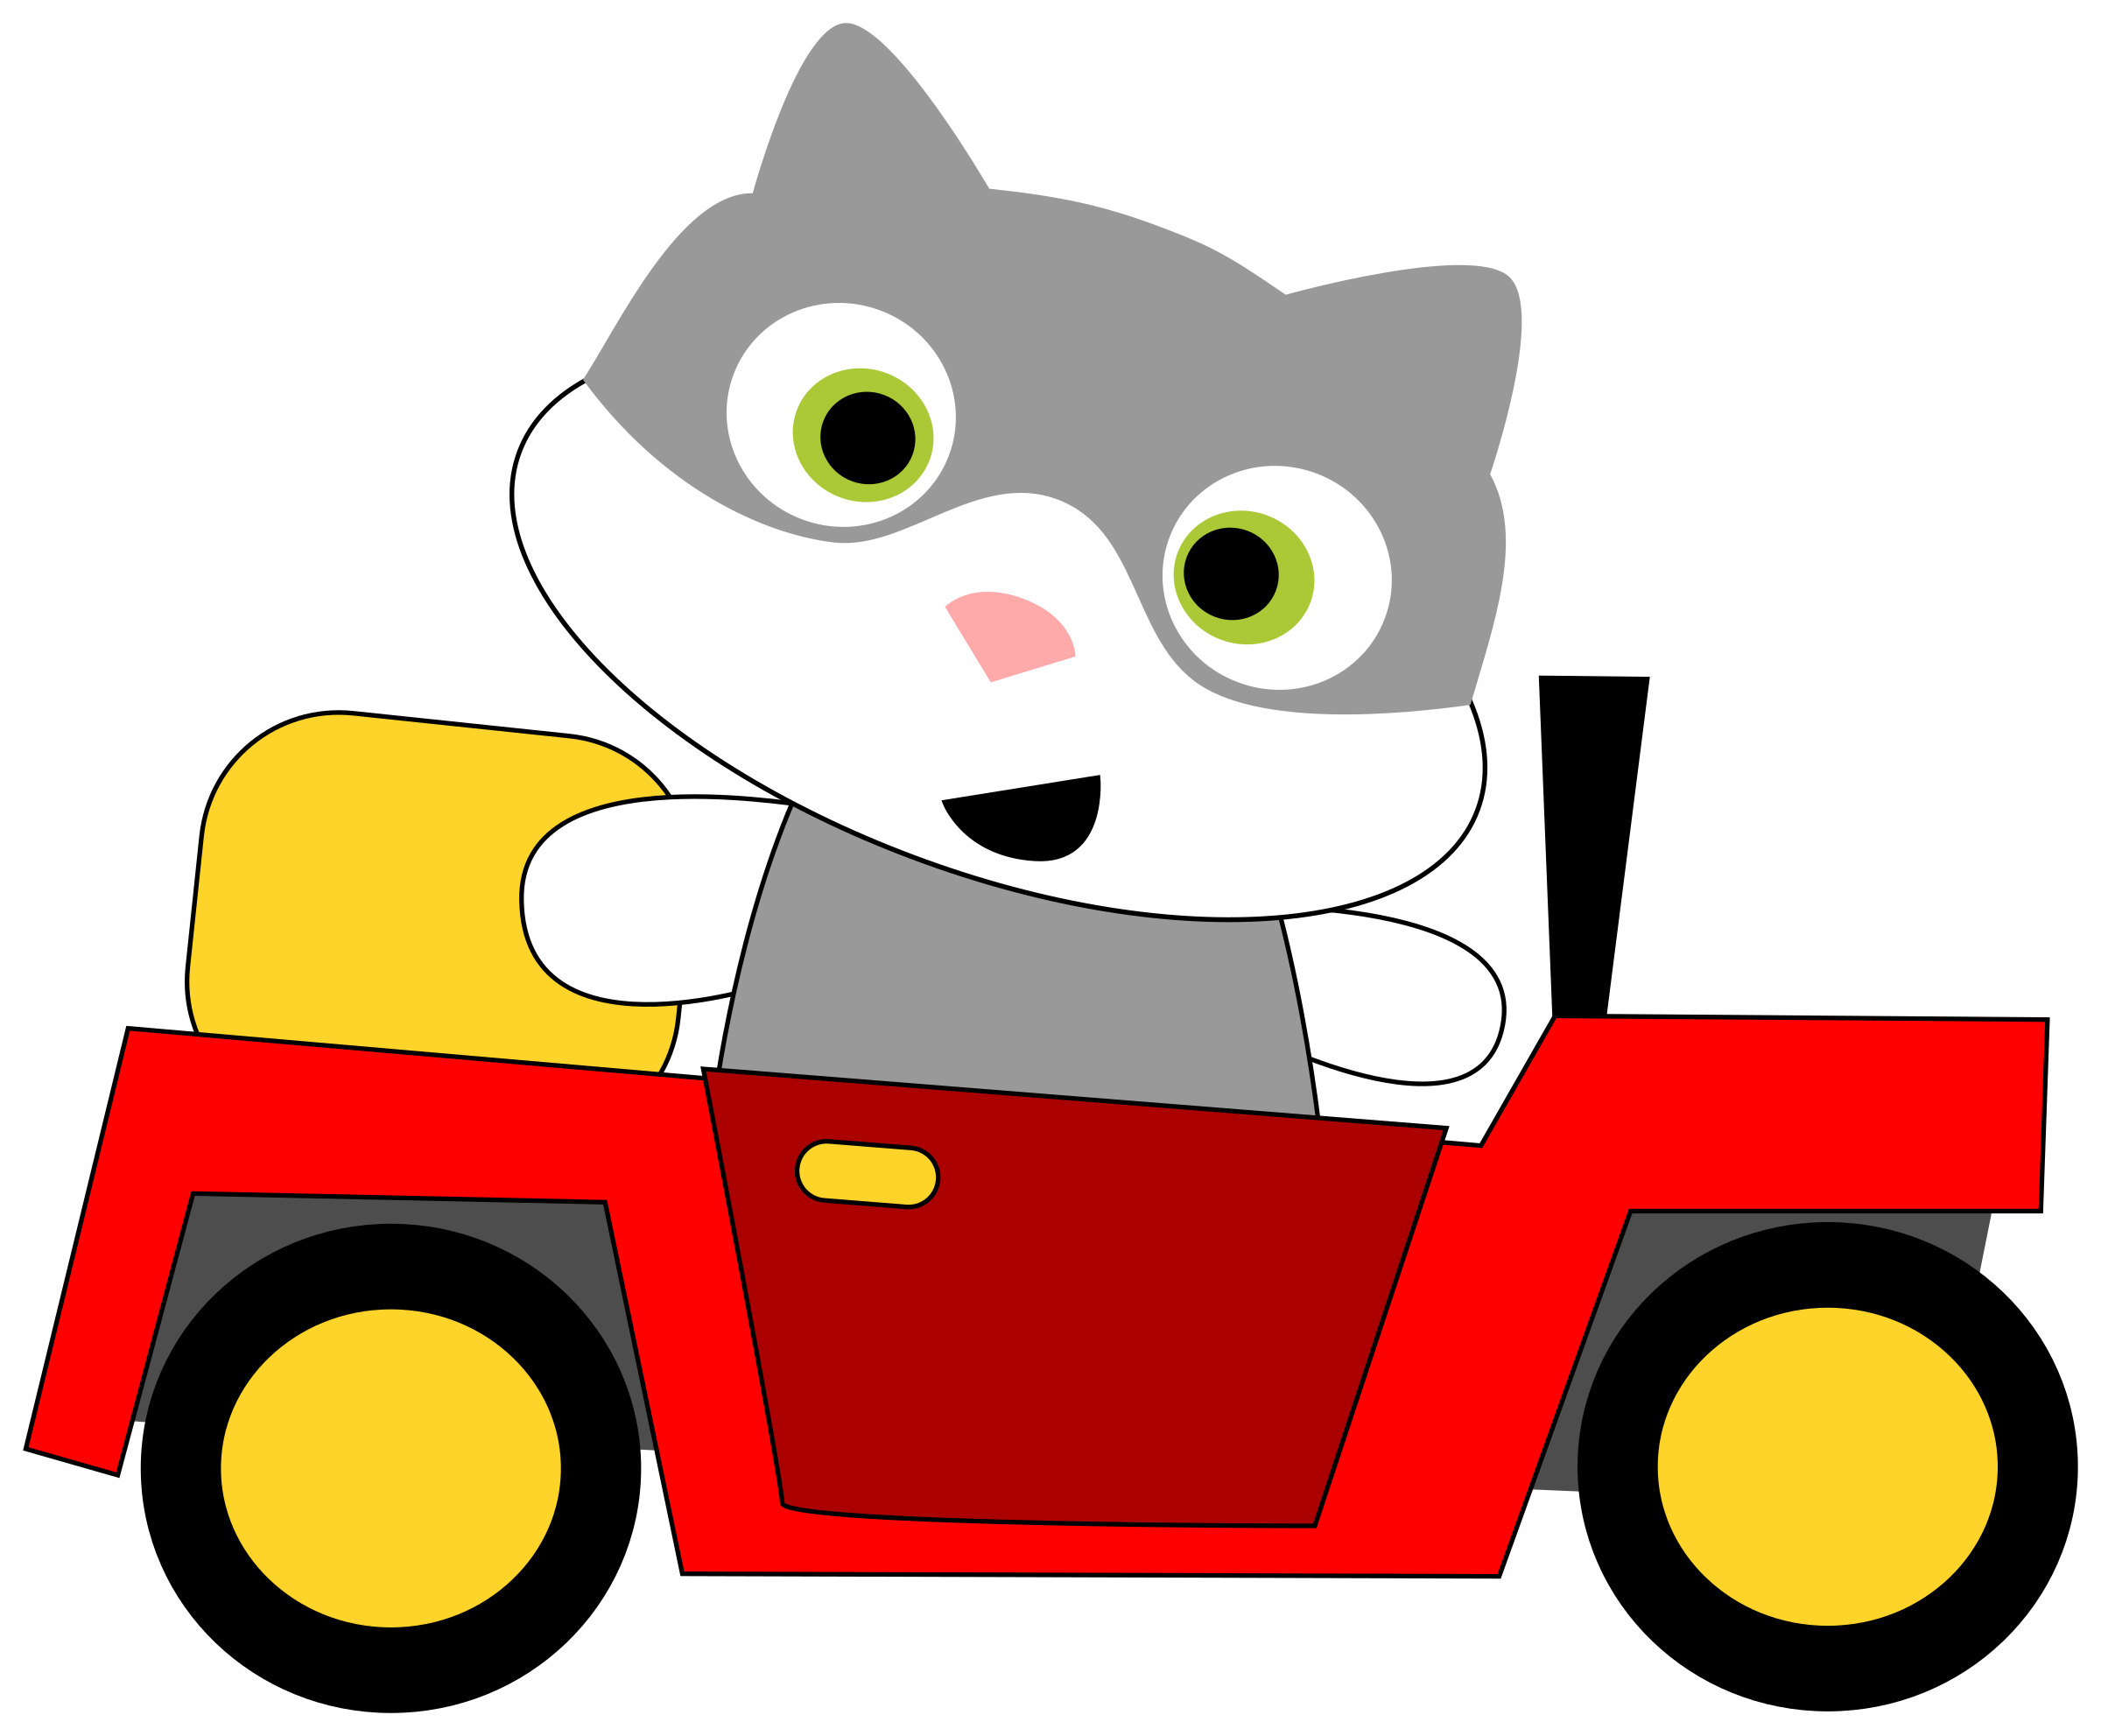 jpg freeuse download Drivers license clipart. A cat driving car